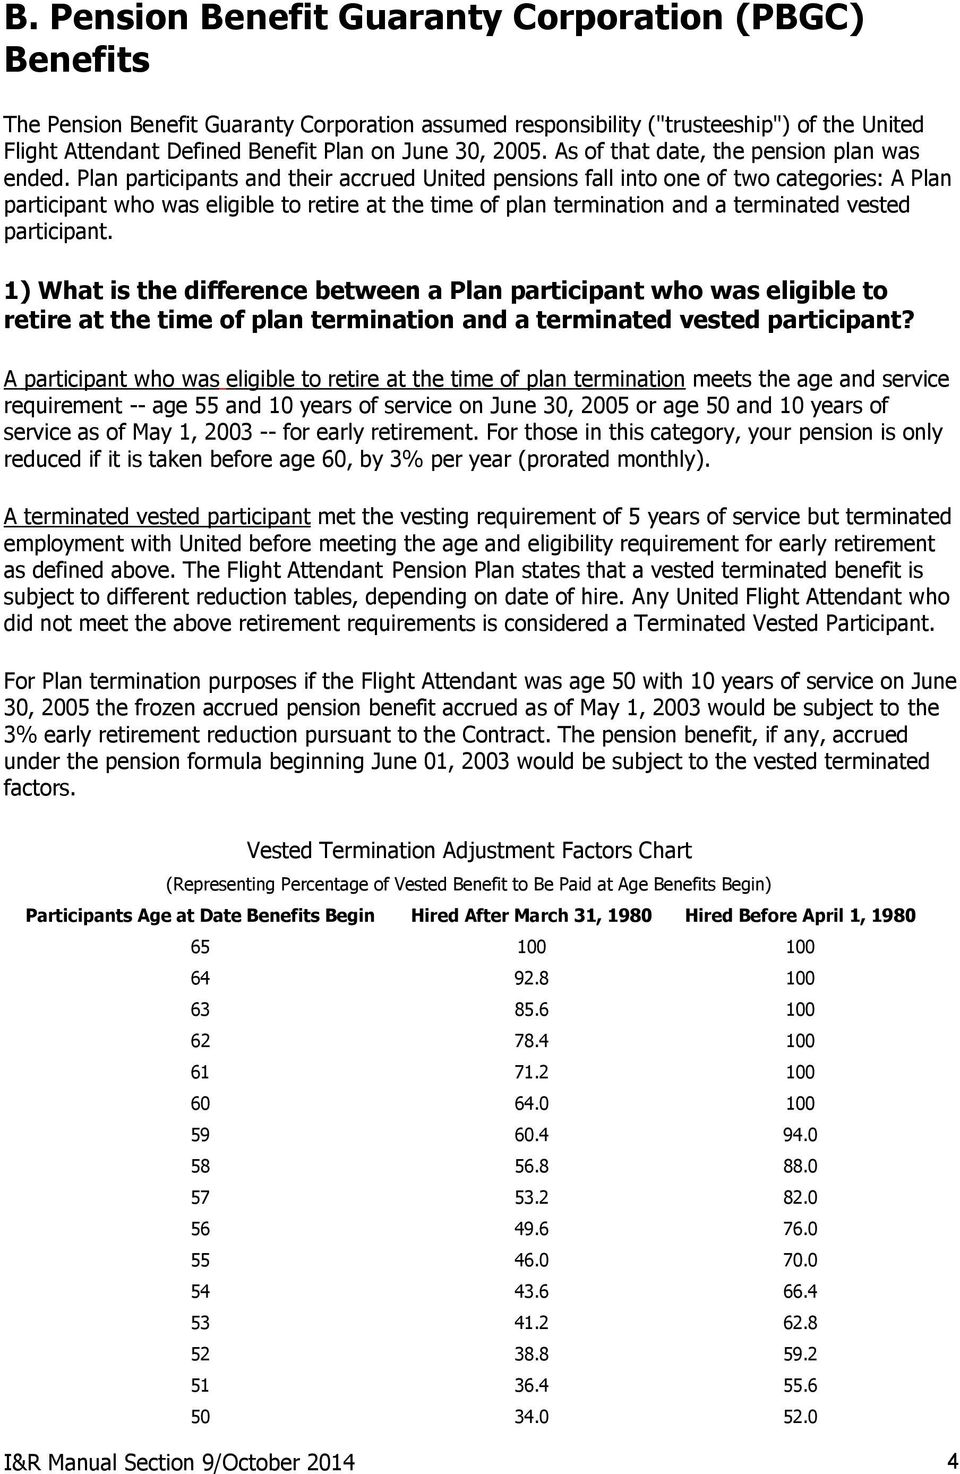 Plan participants and their accrued United pensions fall into one of two categories: A Plan participant who was eligible to retire at the time of plan termination and a terminated vested participant.